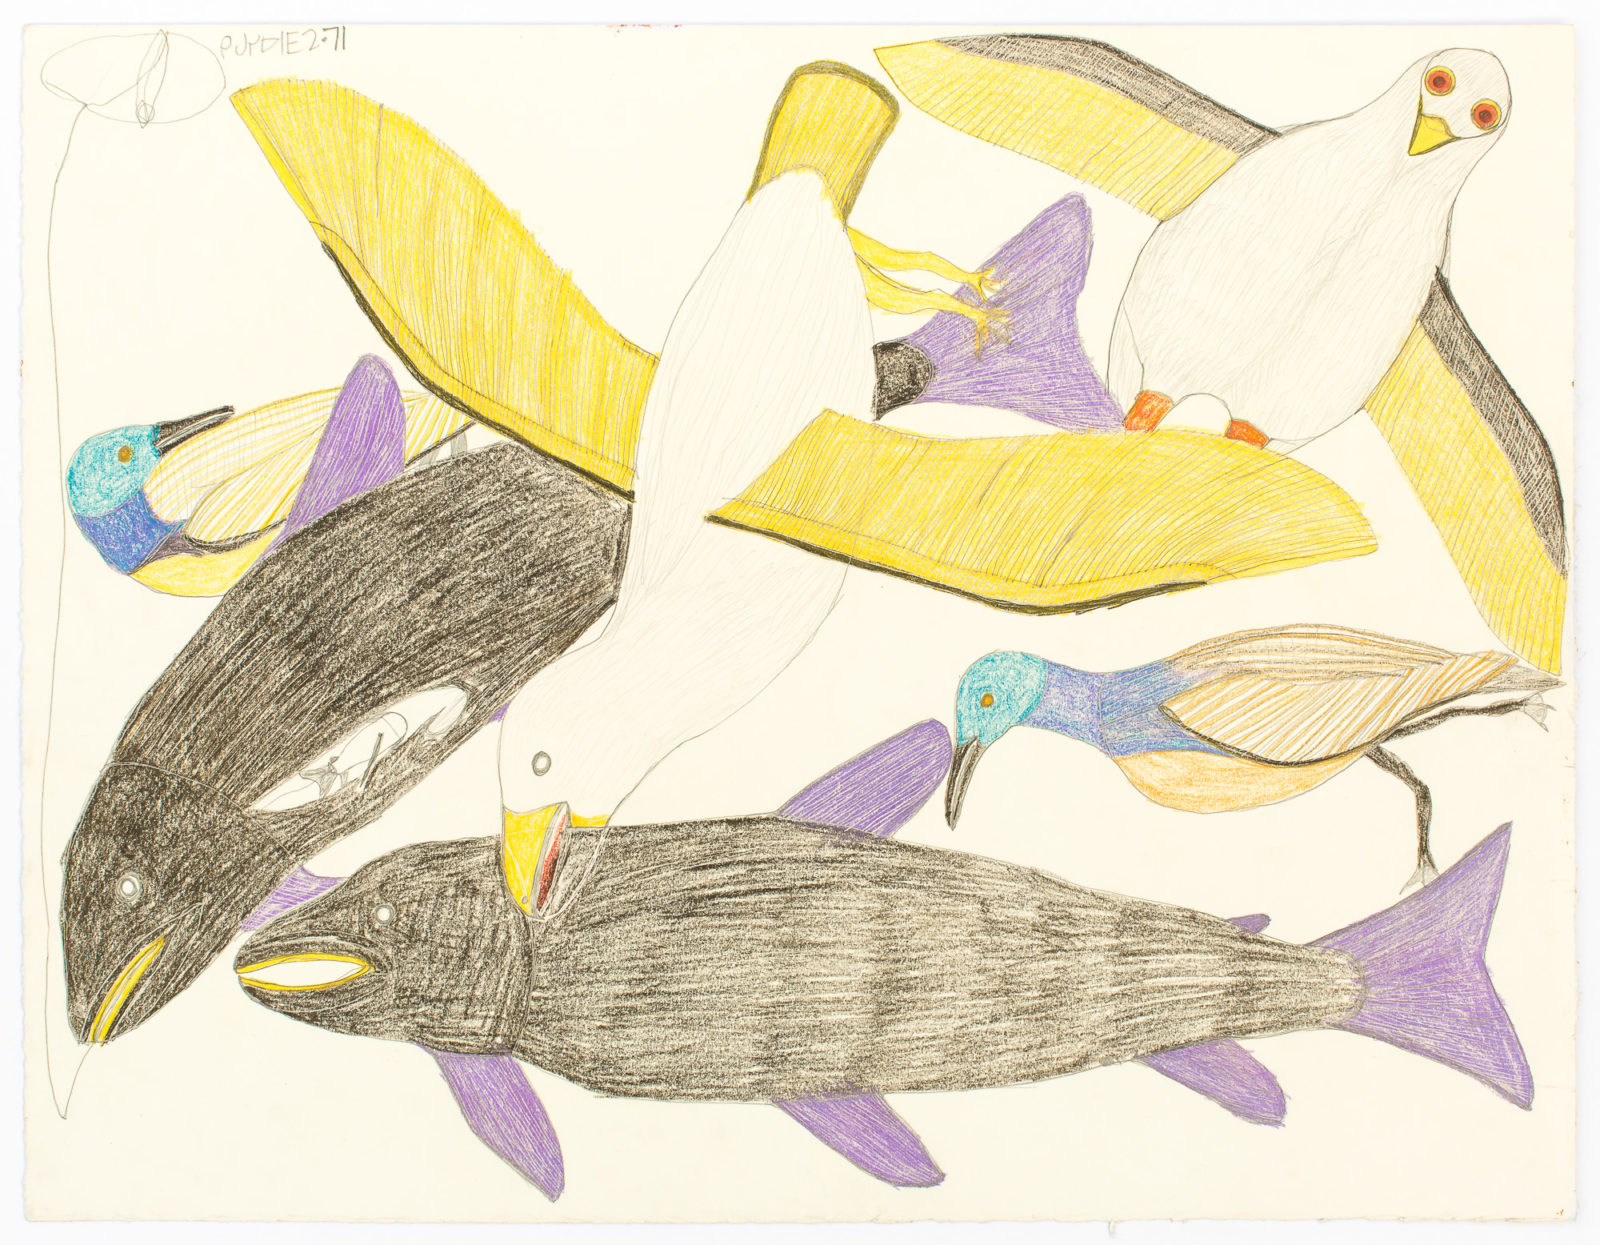 Janet Kigusiuq - untitled (birds and fish)